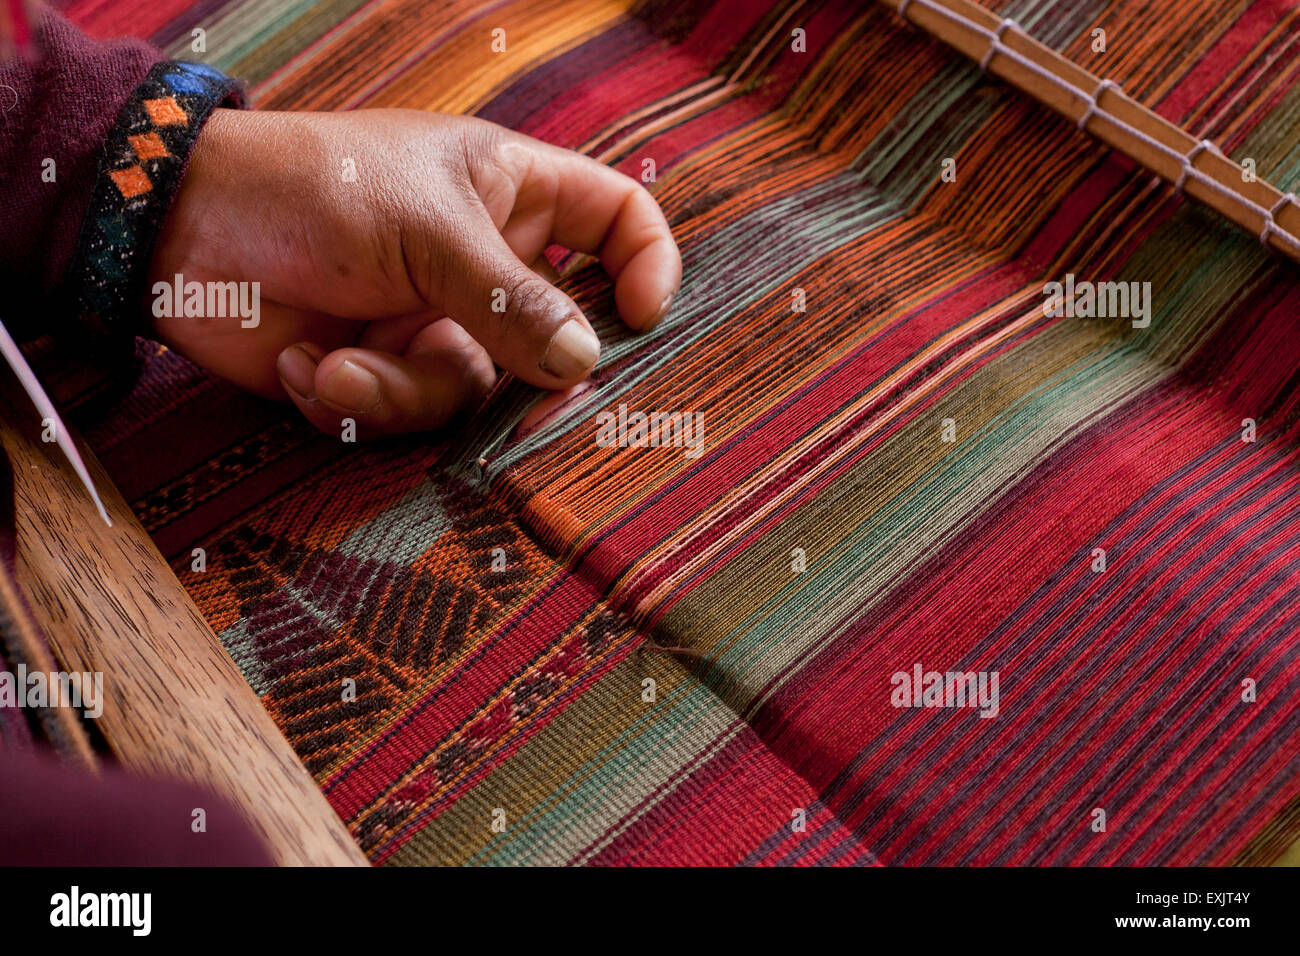 Peruvian man from Chinchero weaving traditional fabric using back strap loom - Stock Image